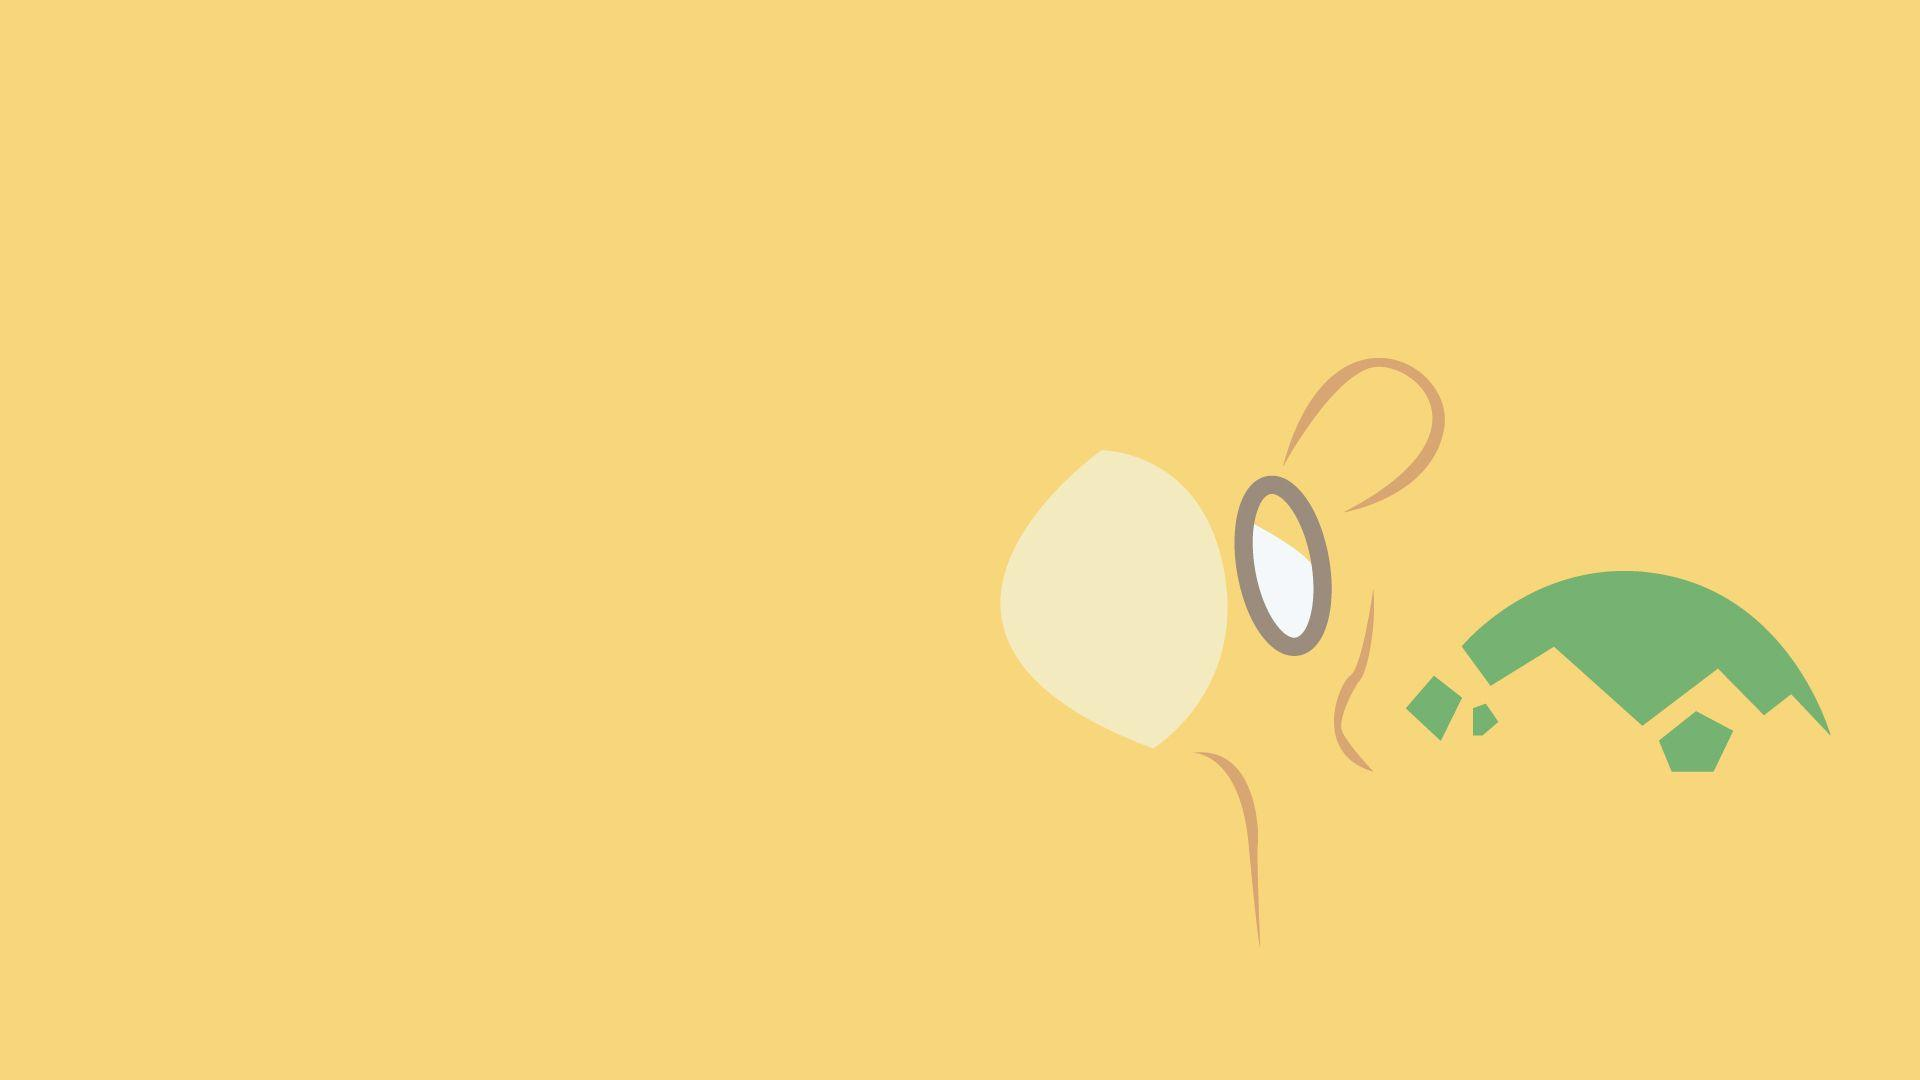 Free 1920x1080 Numel Minimalism Yellow Background Wallpapers Full HD ...